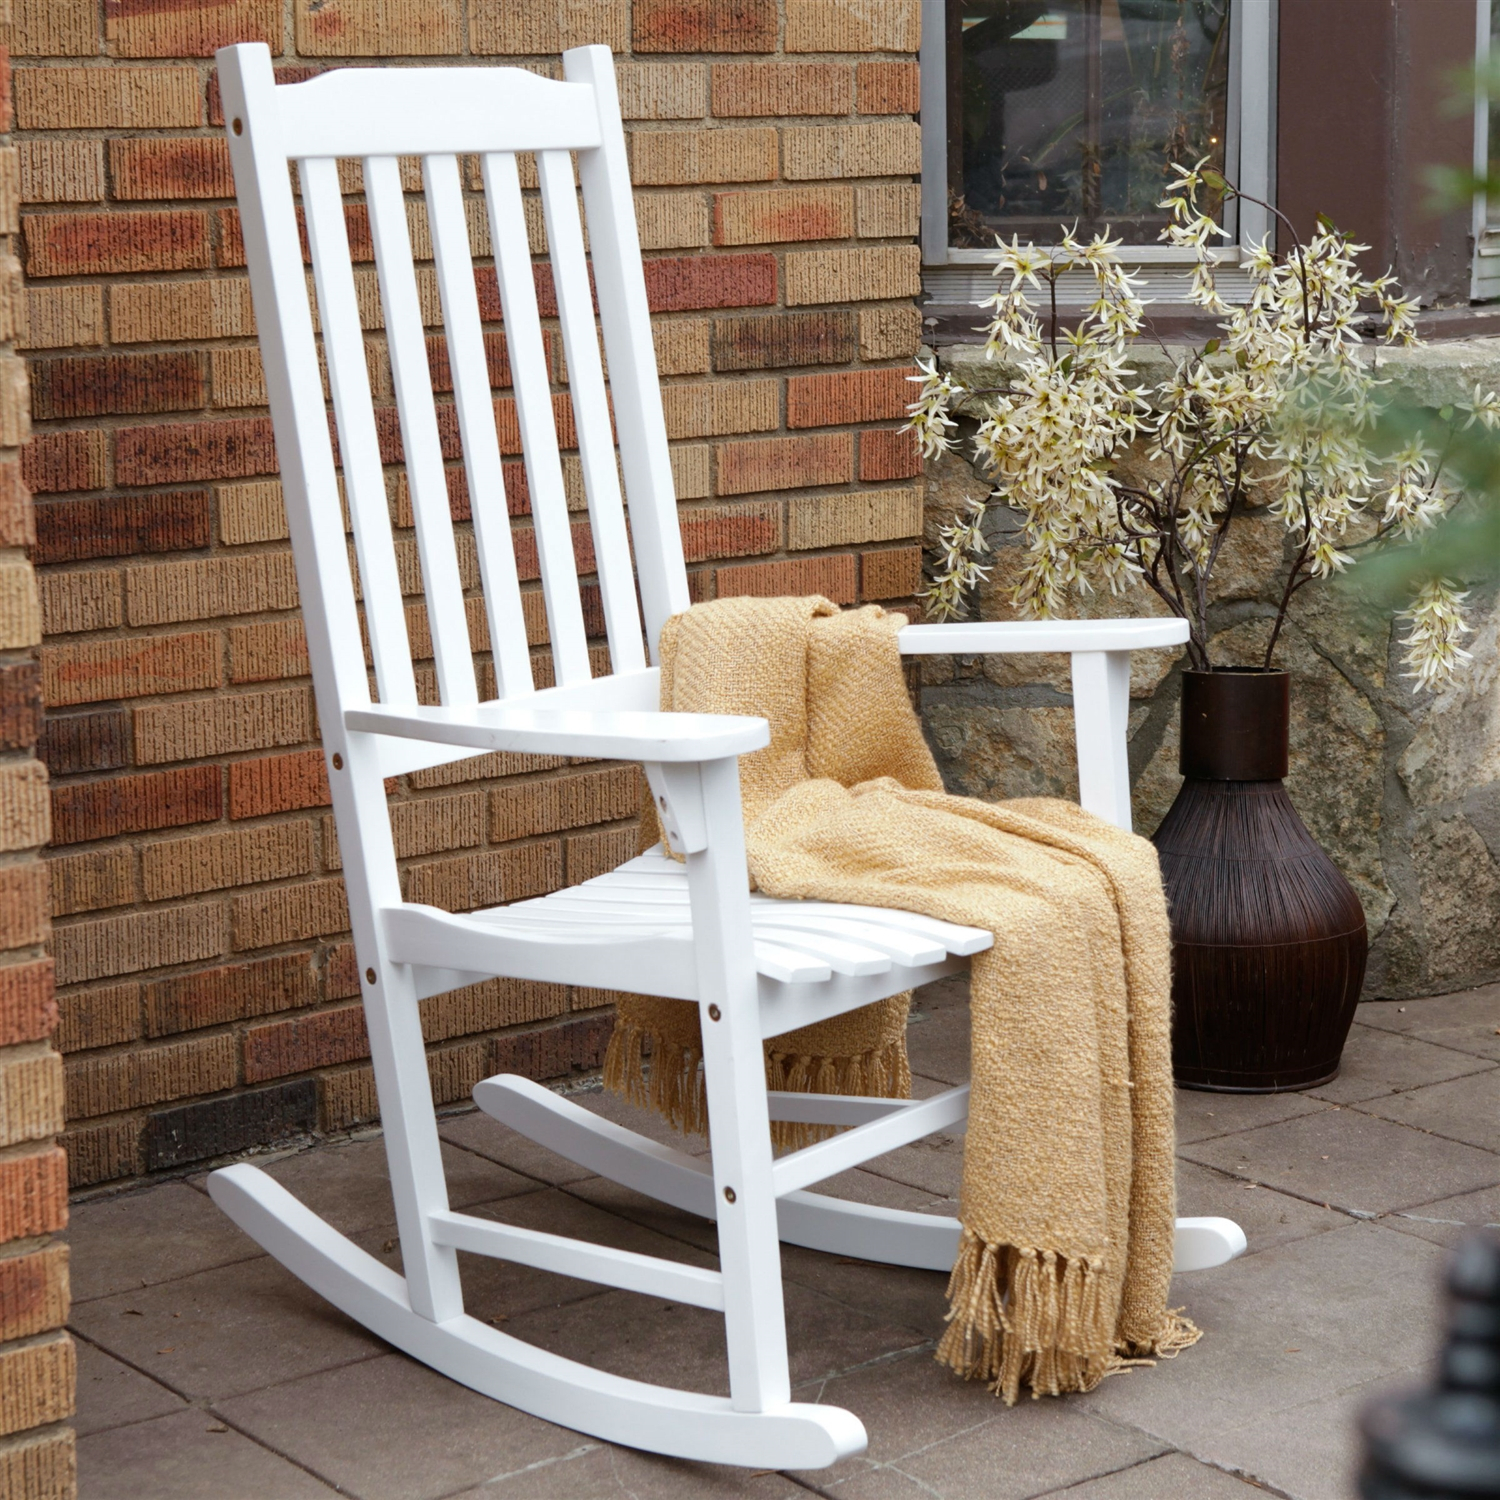 Indoor/outdoor Patio Porch White Slat Rocking Chair Throughout Indoor / Outdoor Porch Slat Rocking Chairs (#12 of 20)